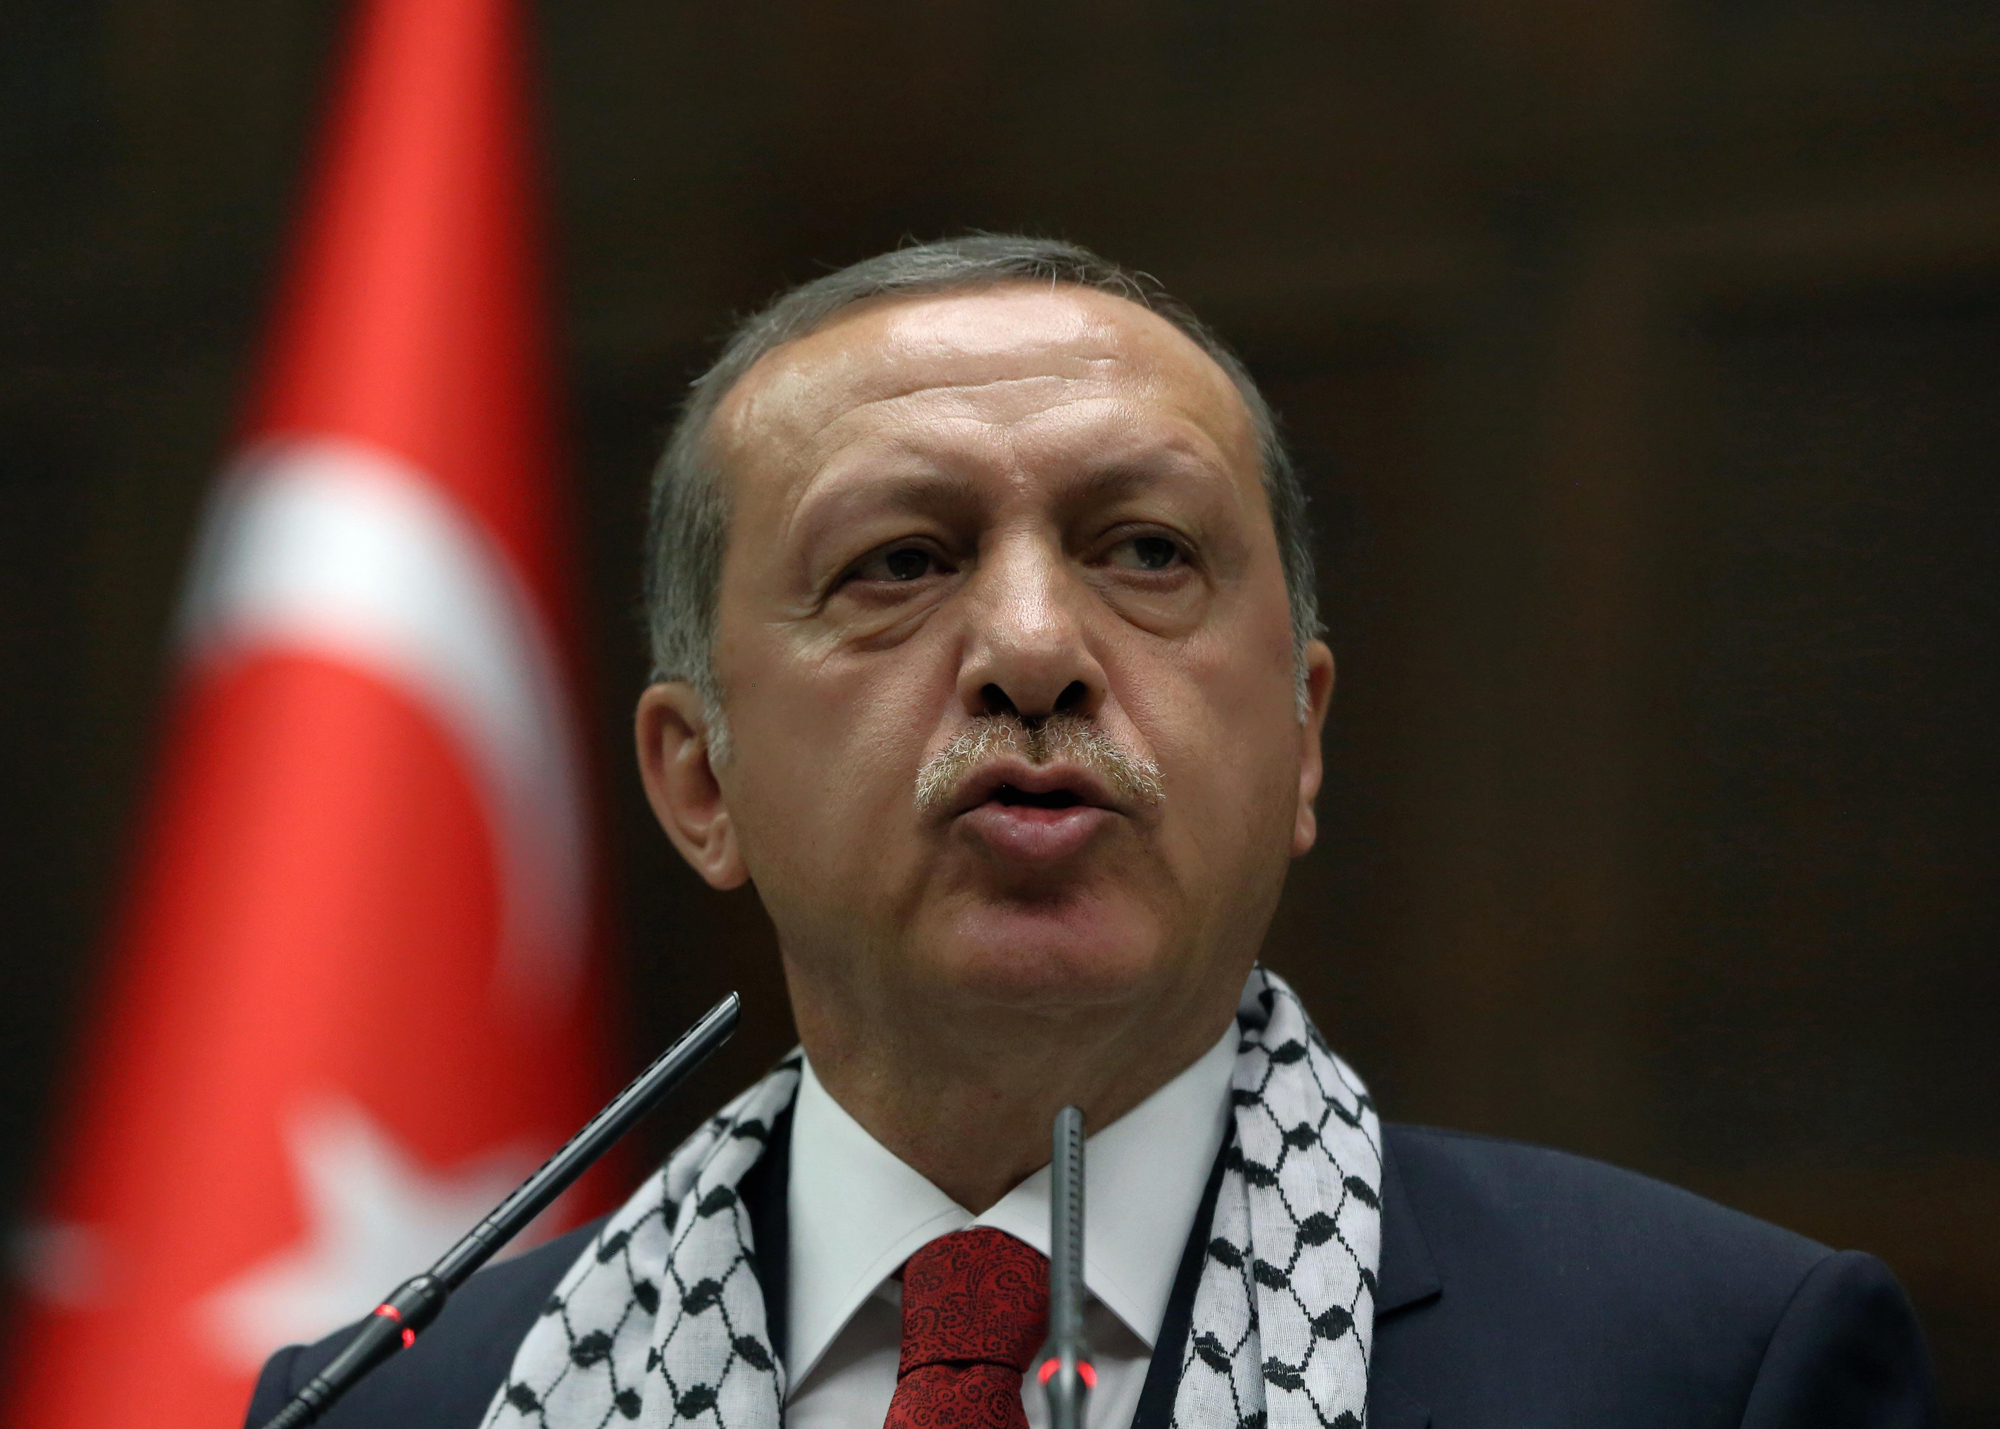 Turkish Prime Minister Recep Tayyip Erdogan addresses his supporters at parliament wearing a Palestinian keffiyeh, in Ankara, July 22, 2014.